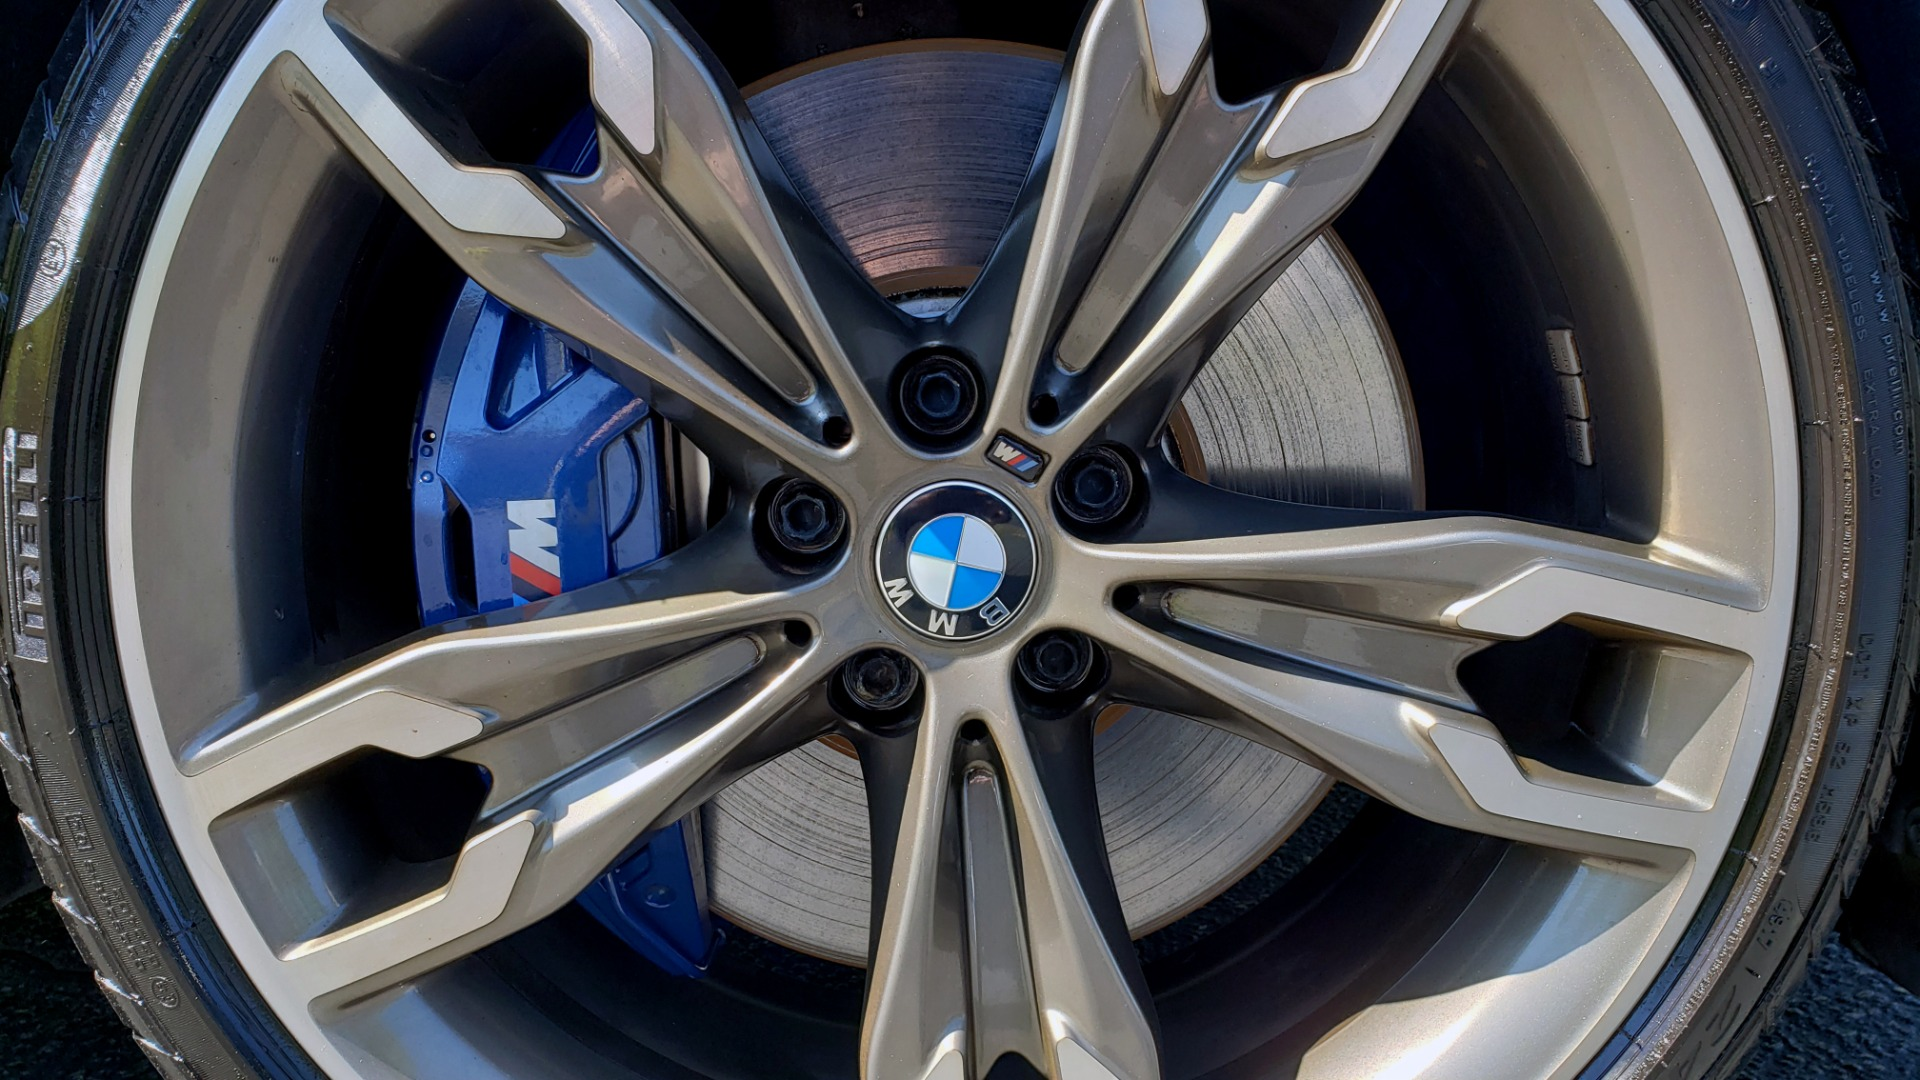 Used 2018 BMW 5 SERIES M550I XDRIVE / EXEC PKG / LUX / DRVR ASST / CLD WTHR / ACTIVE DR for sale Sold at Formula Imports in Charlotte NC 28227 10